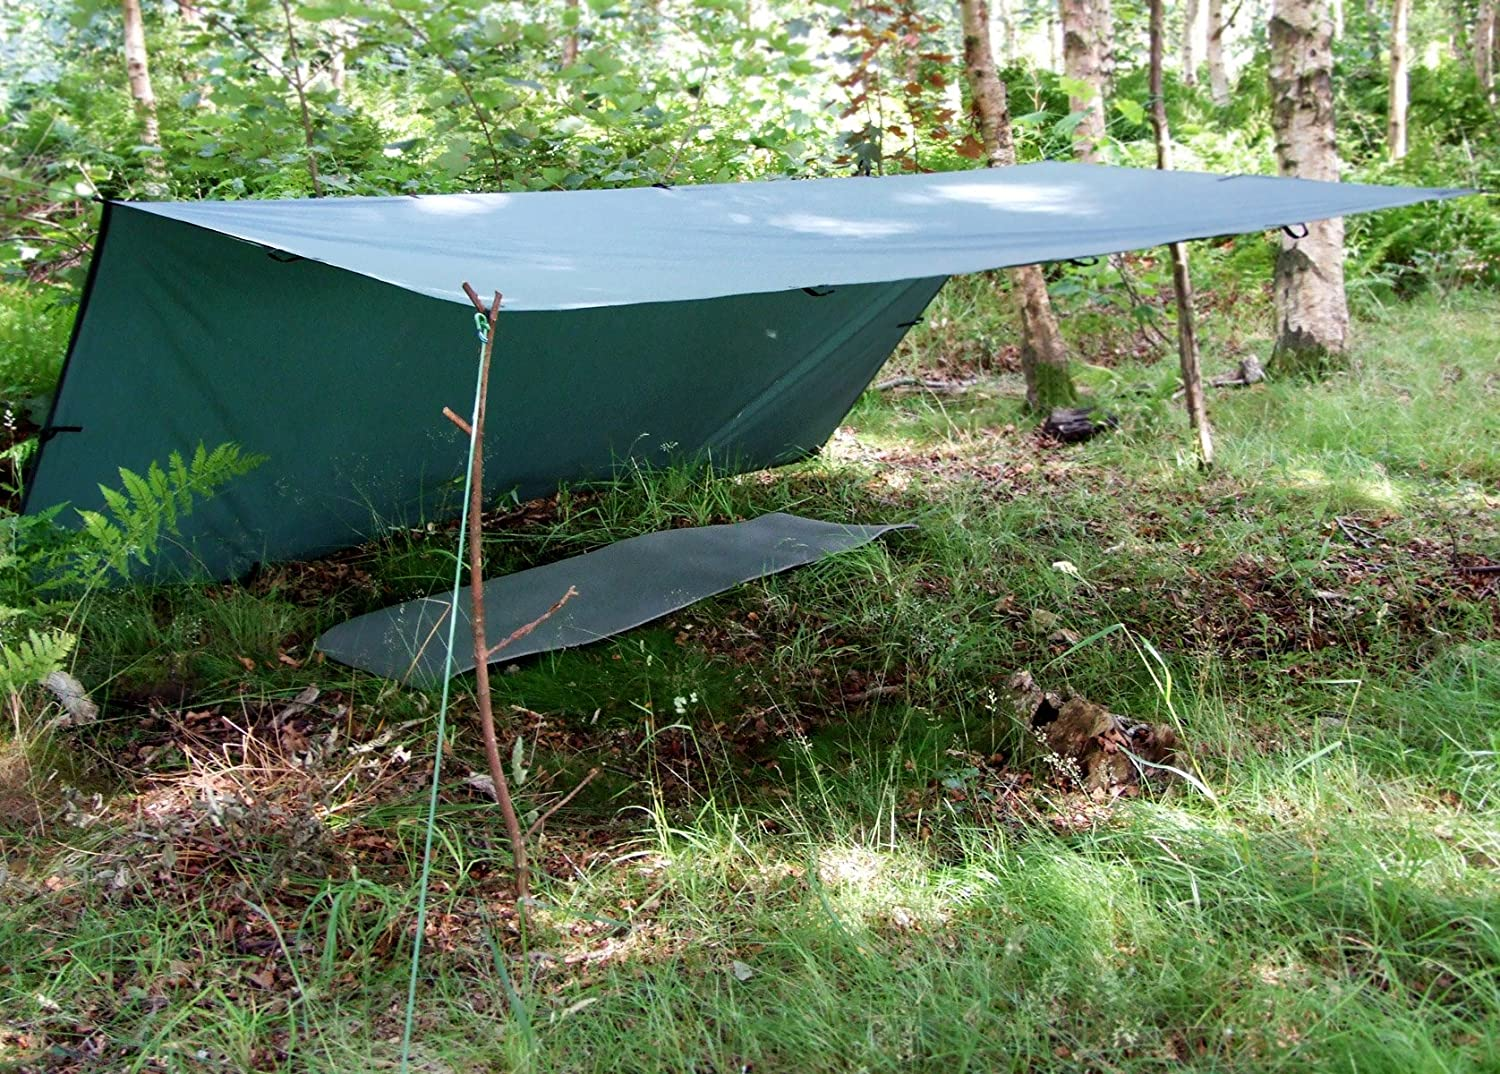 amazon     dd tarp 3m x 3m   olive green  10ft x 10ft    sports  u0026 outdoors amazon     dd tarp 3m x 3m   olive green  10ft x 10ft    sports      rh   amazon